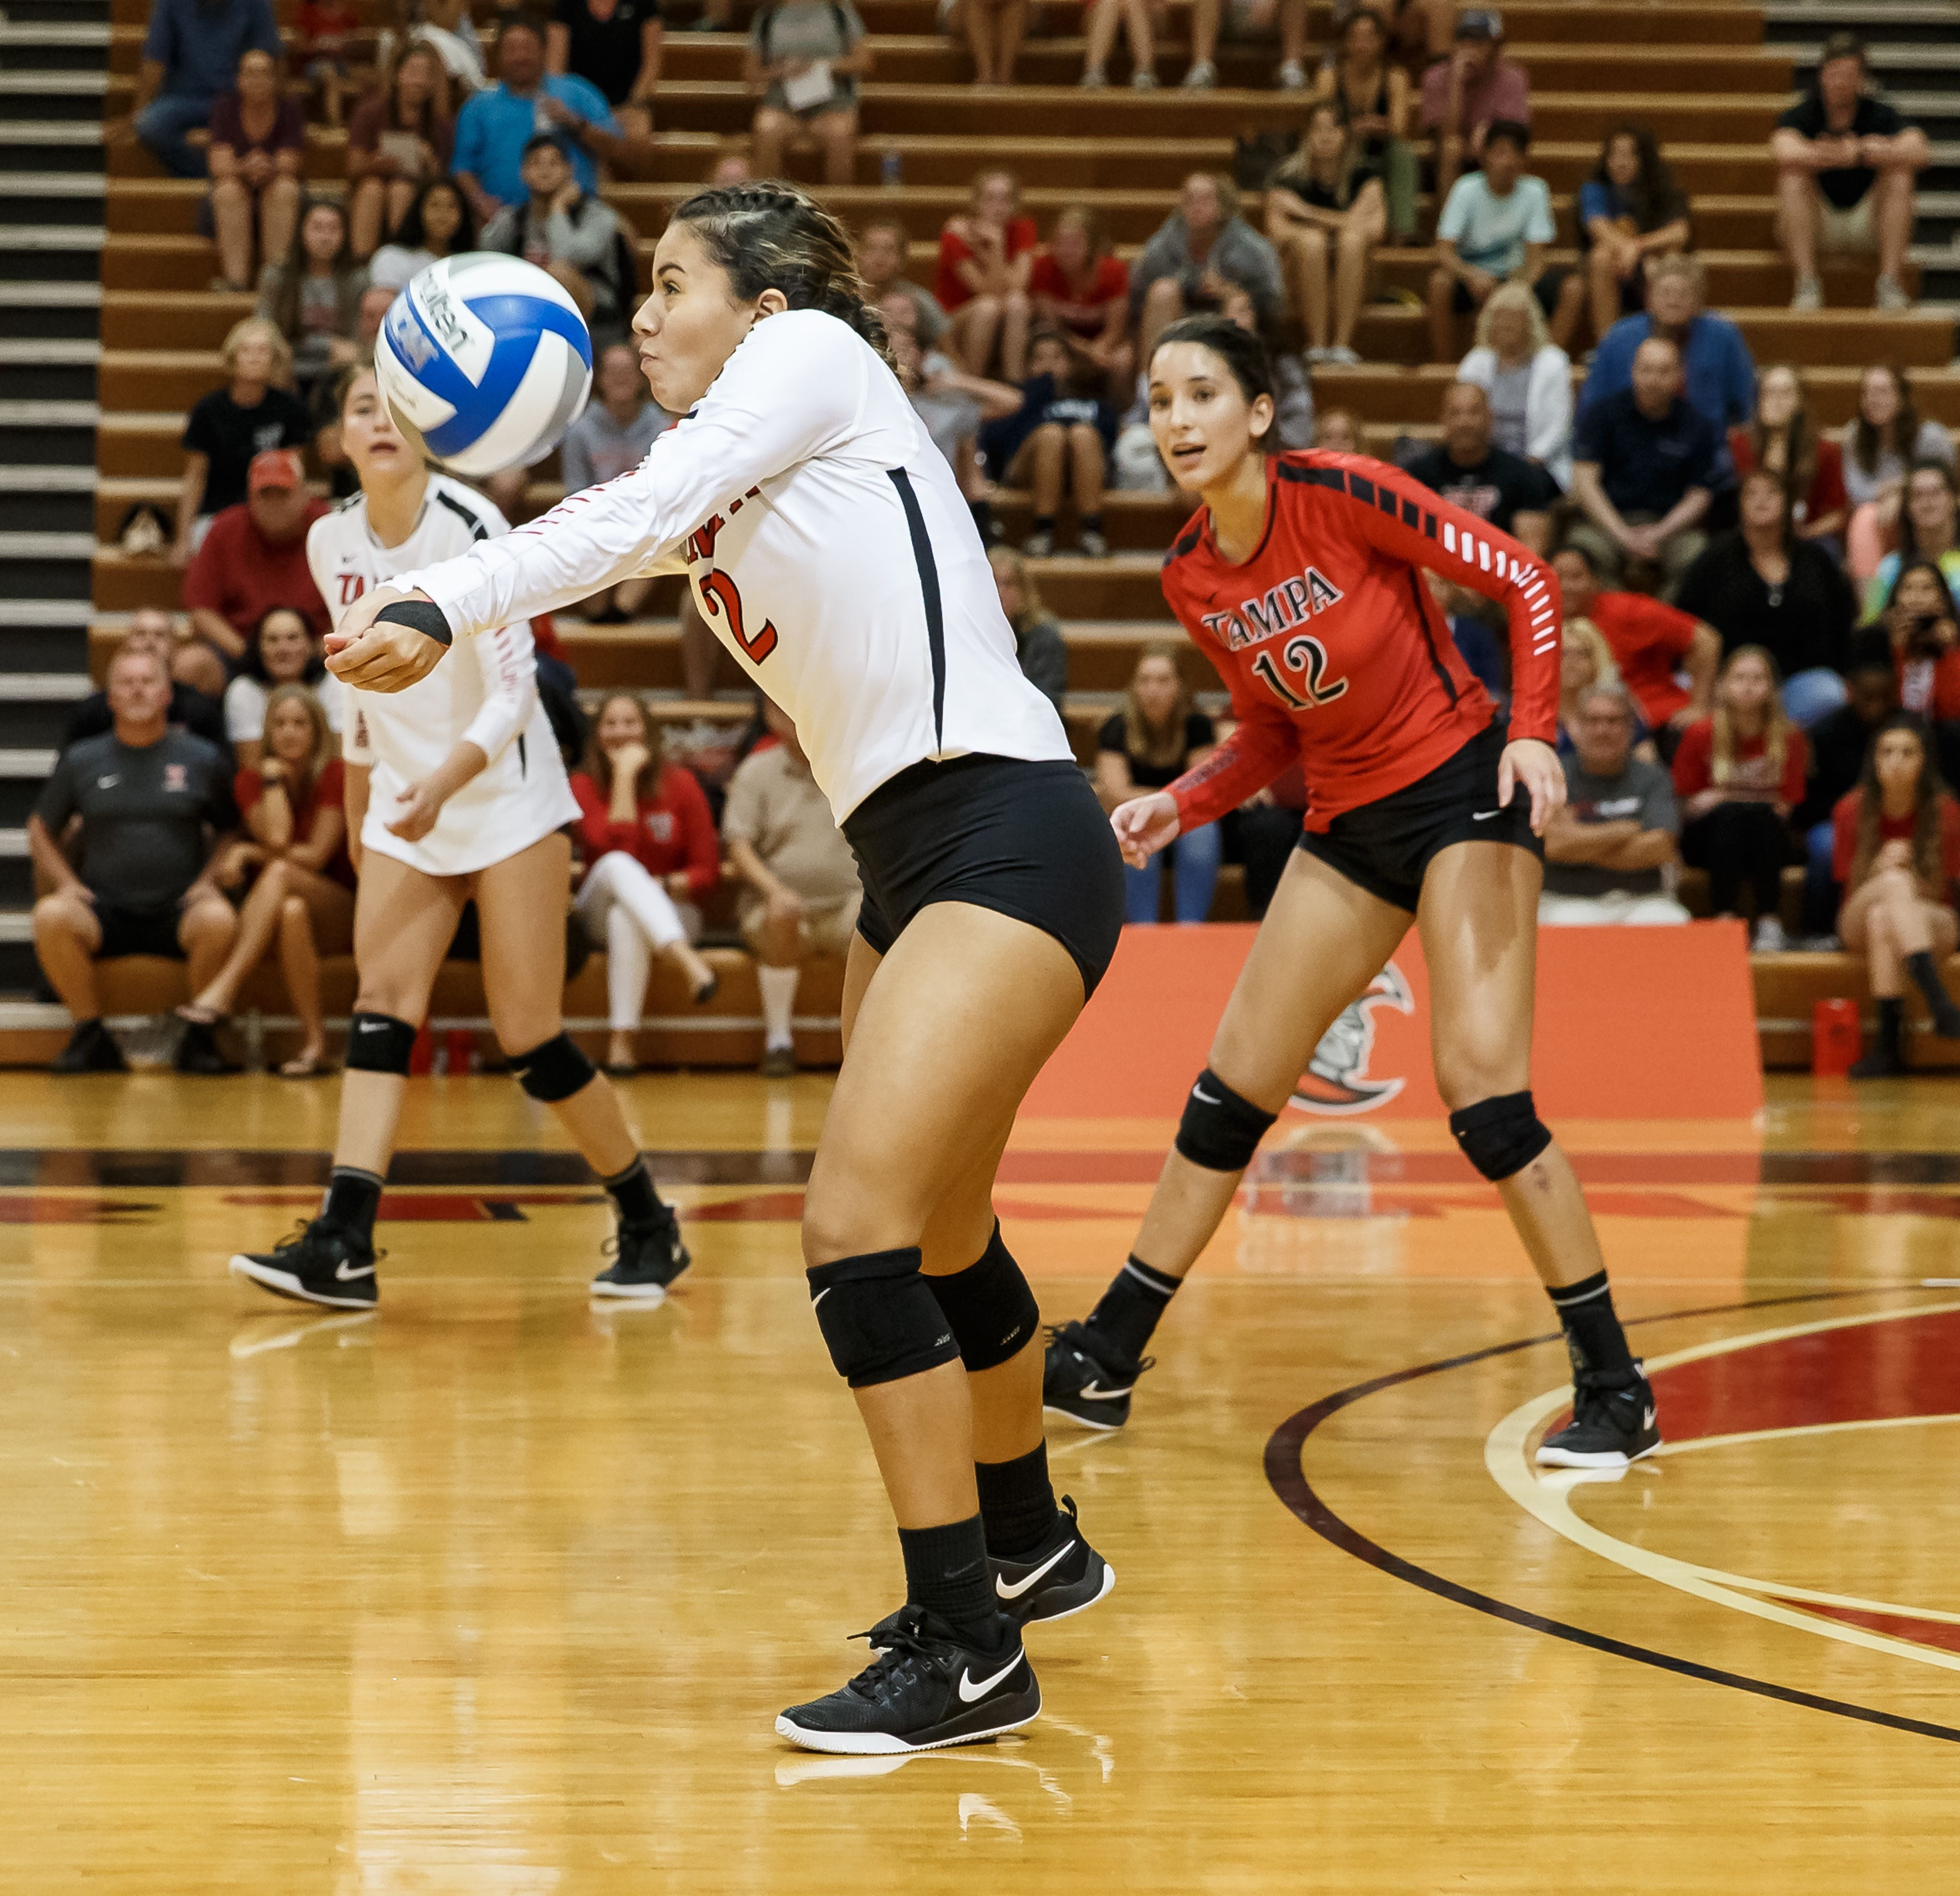 University Of Tampa Spartans Division Ii Athletics Women S Volleyball Women Volleyball Athlete University Of Tampa